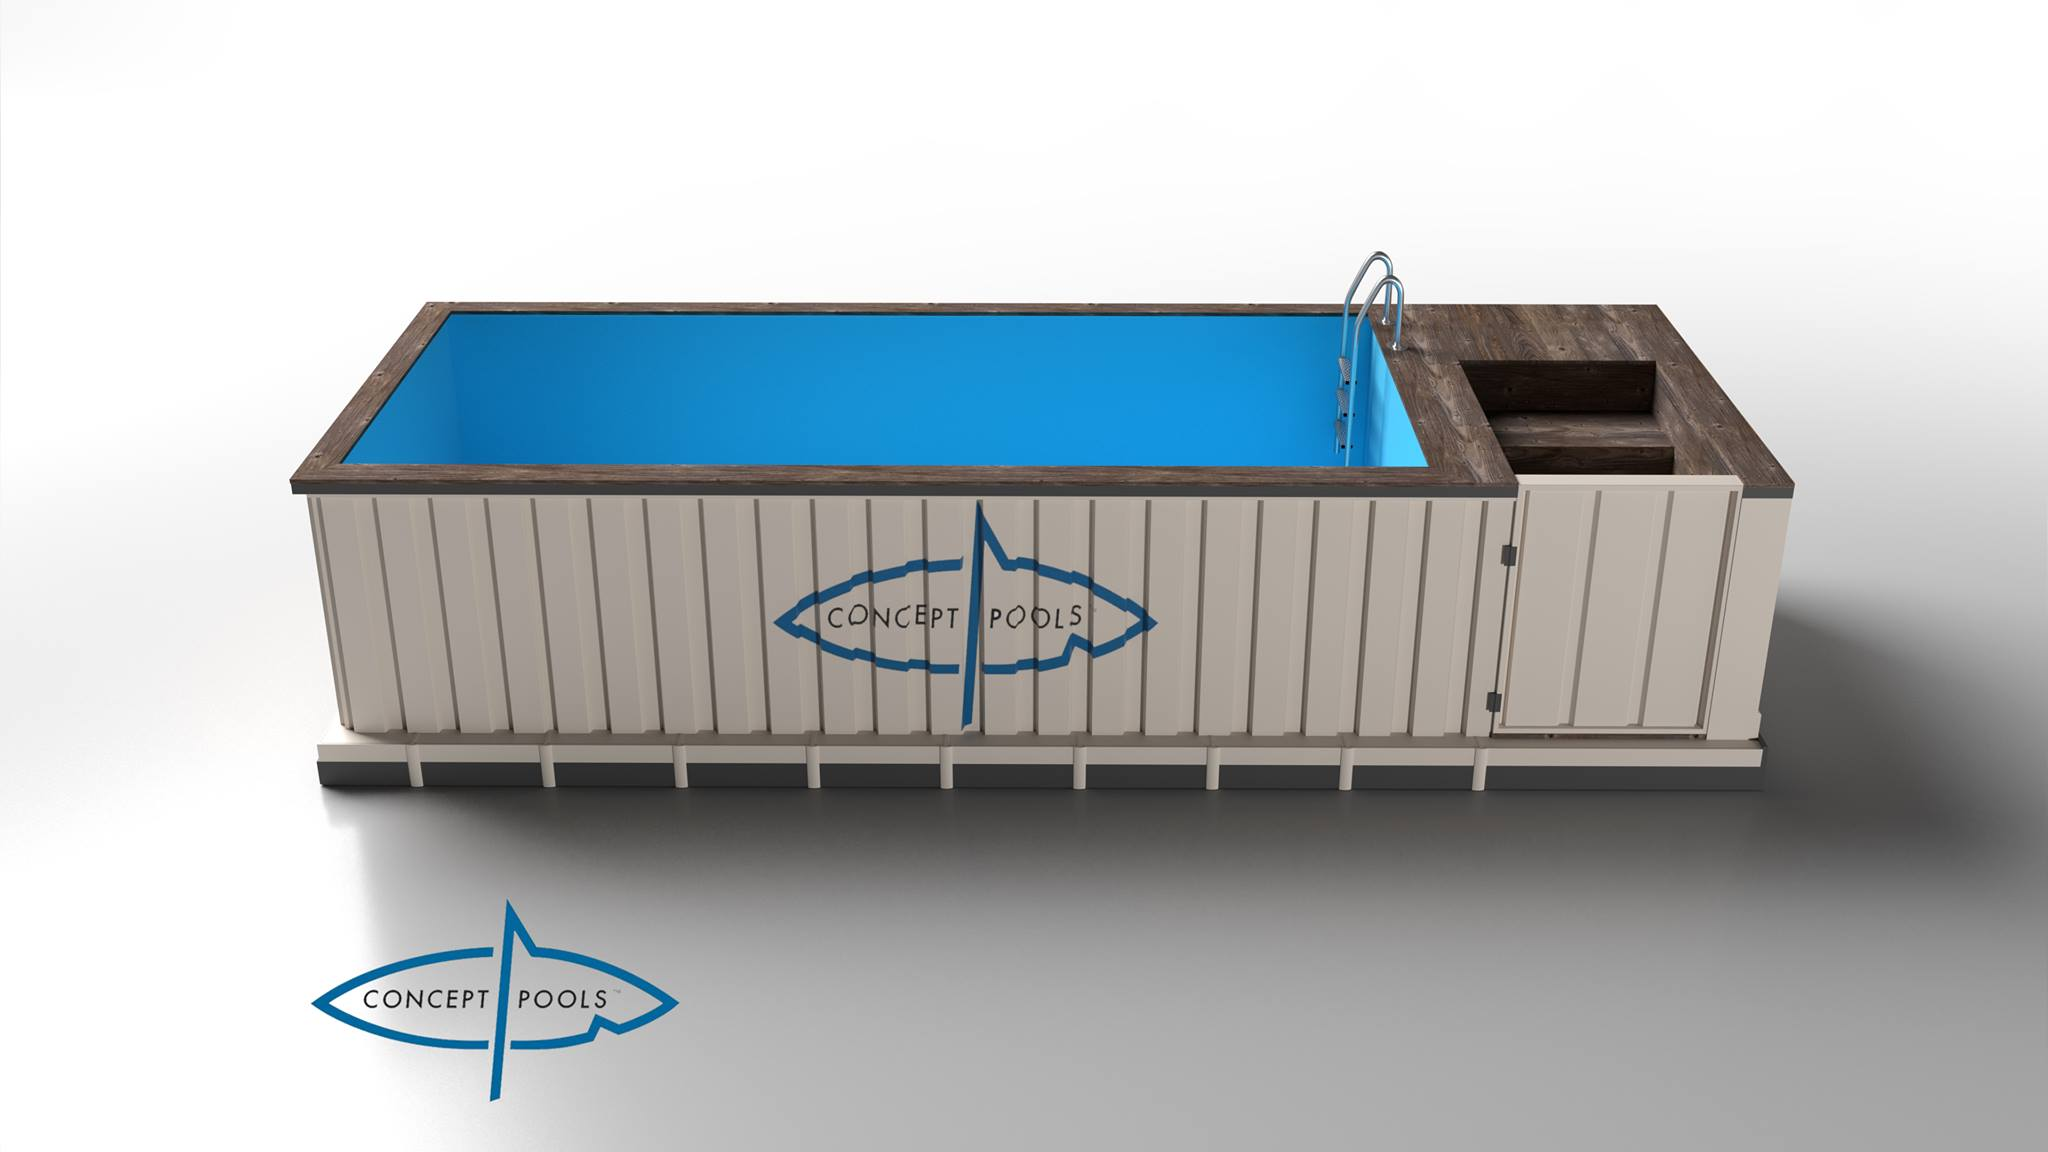 container als pool containerpools event highlight und garten schwimmbad shipping container. Black Bedroom Furniture Sets. Home Design Ideas